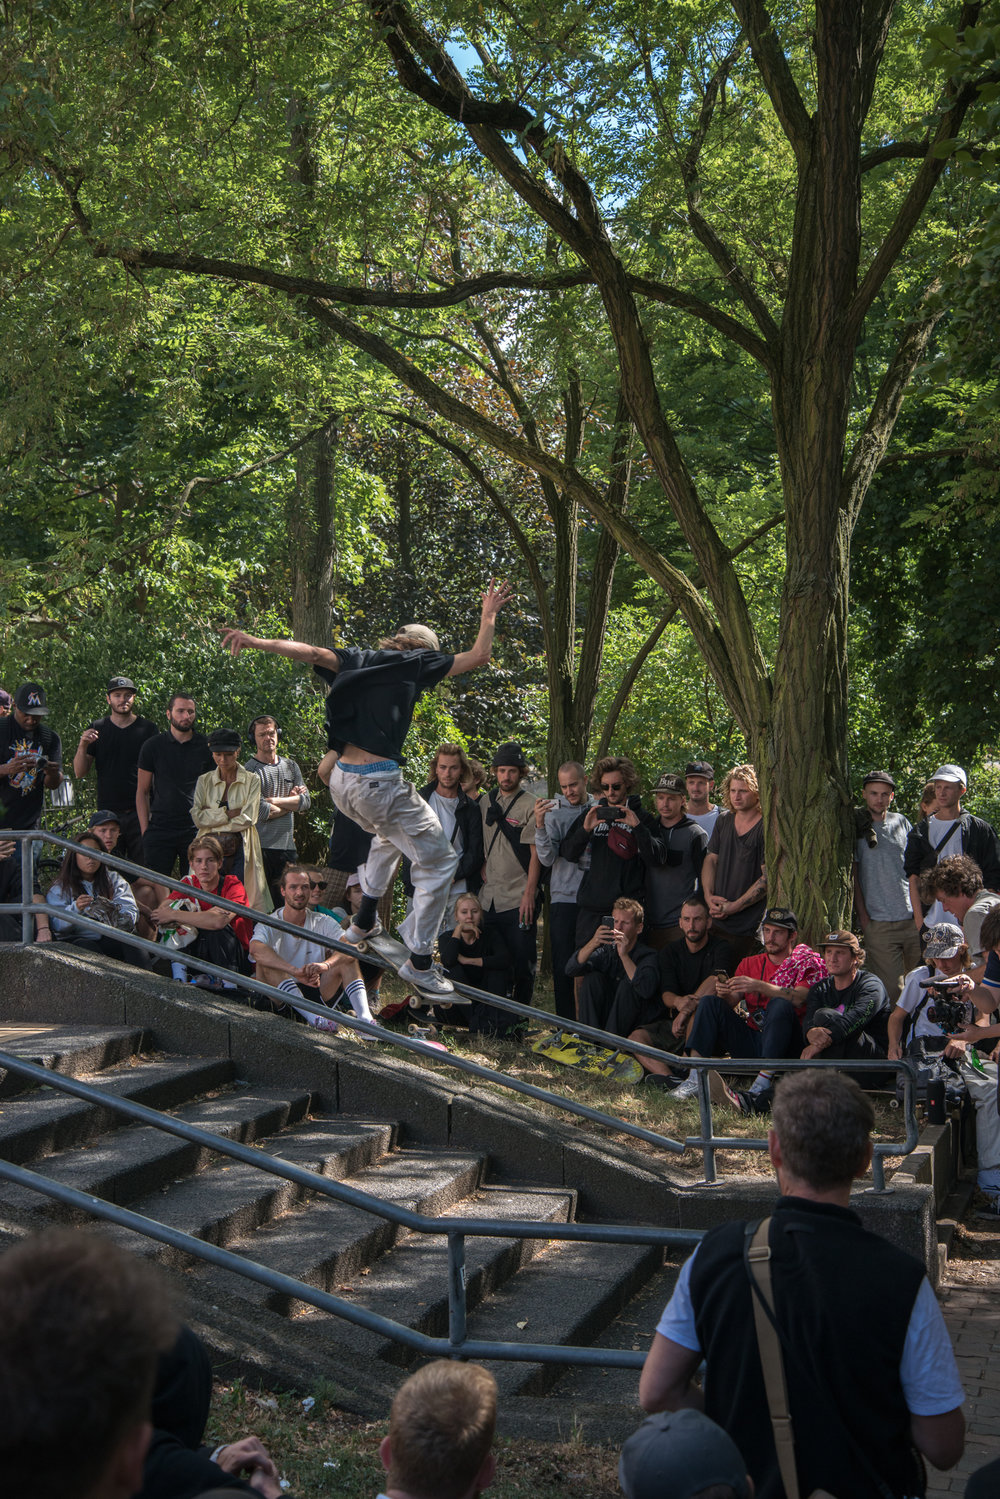 2018.08.11 CPH smith grind dont know who.jpg